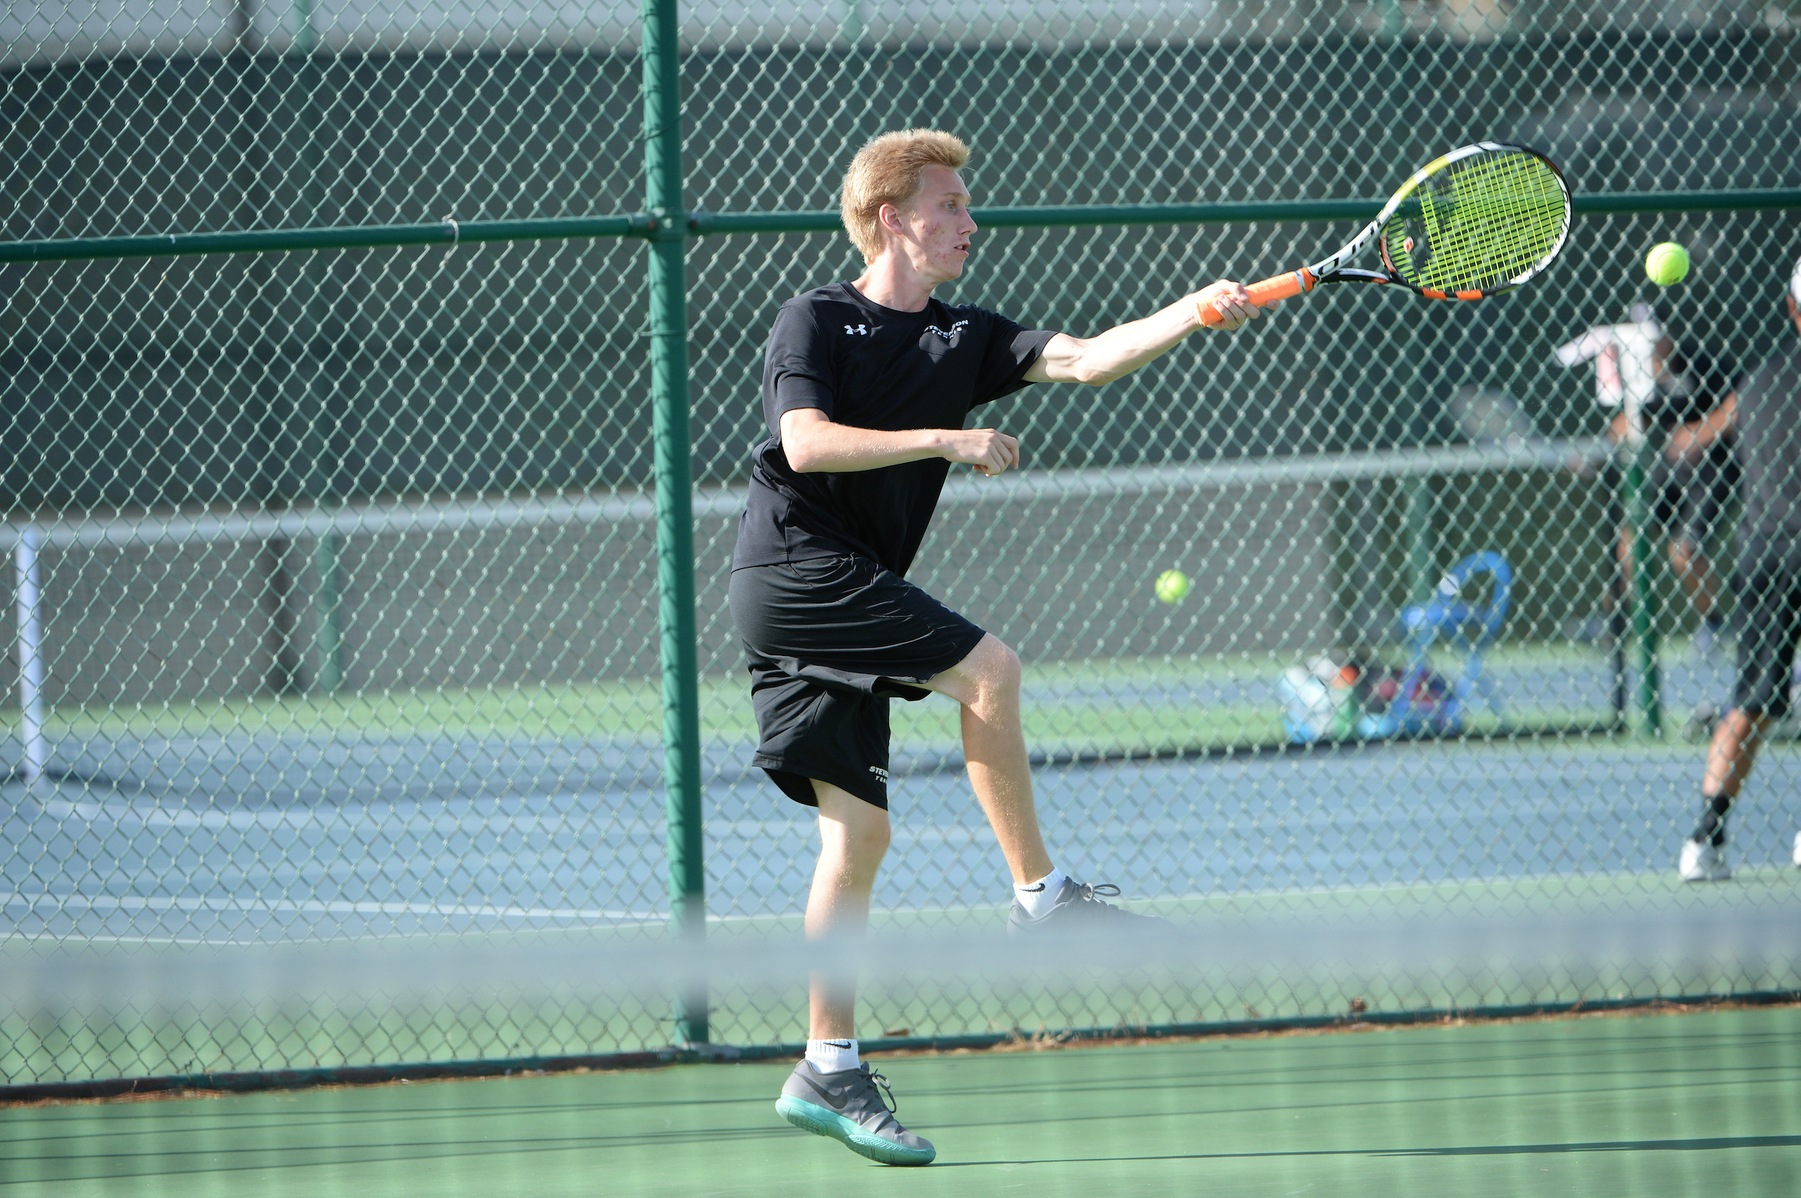 Men's Tennis Opens Up Fall Campaign with 8-1 Win Over Catholic